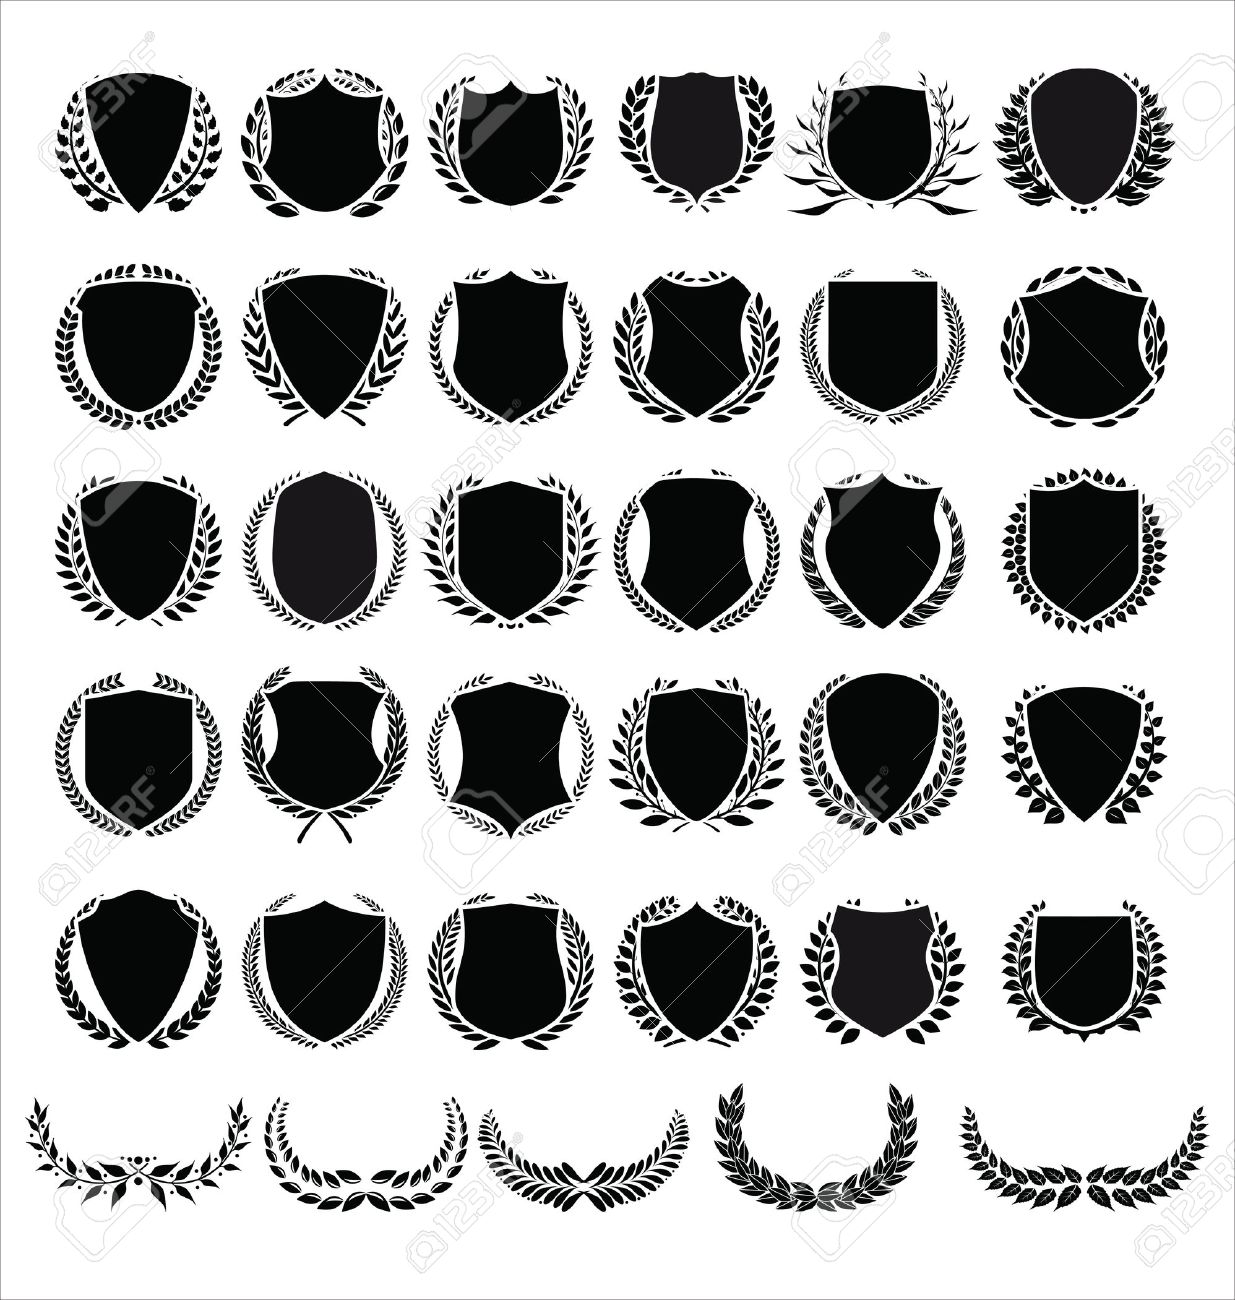 Vector medieval shields and laurel wreaths collection - 42441651